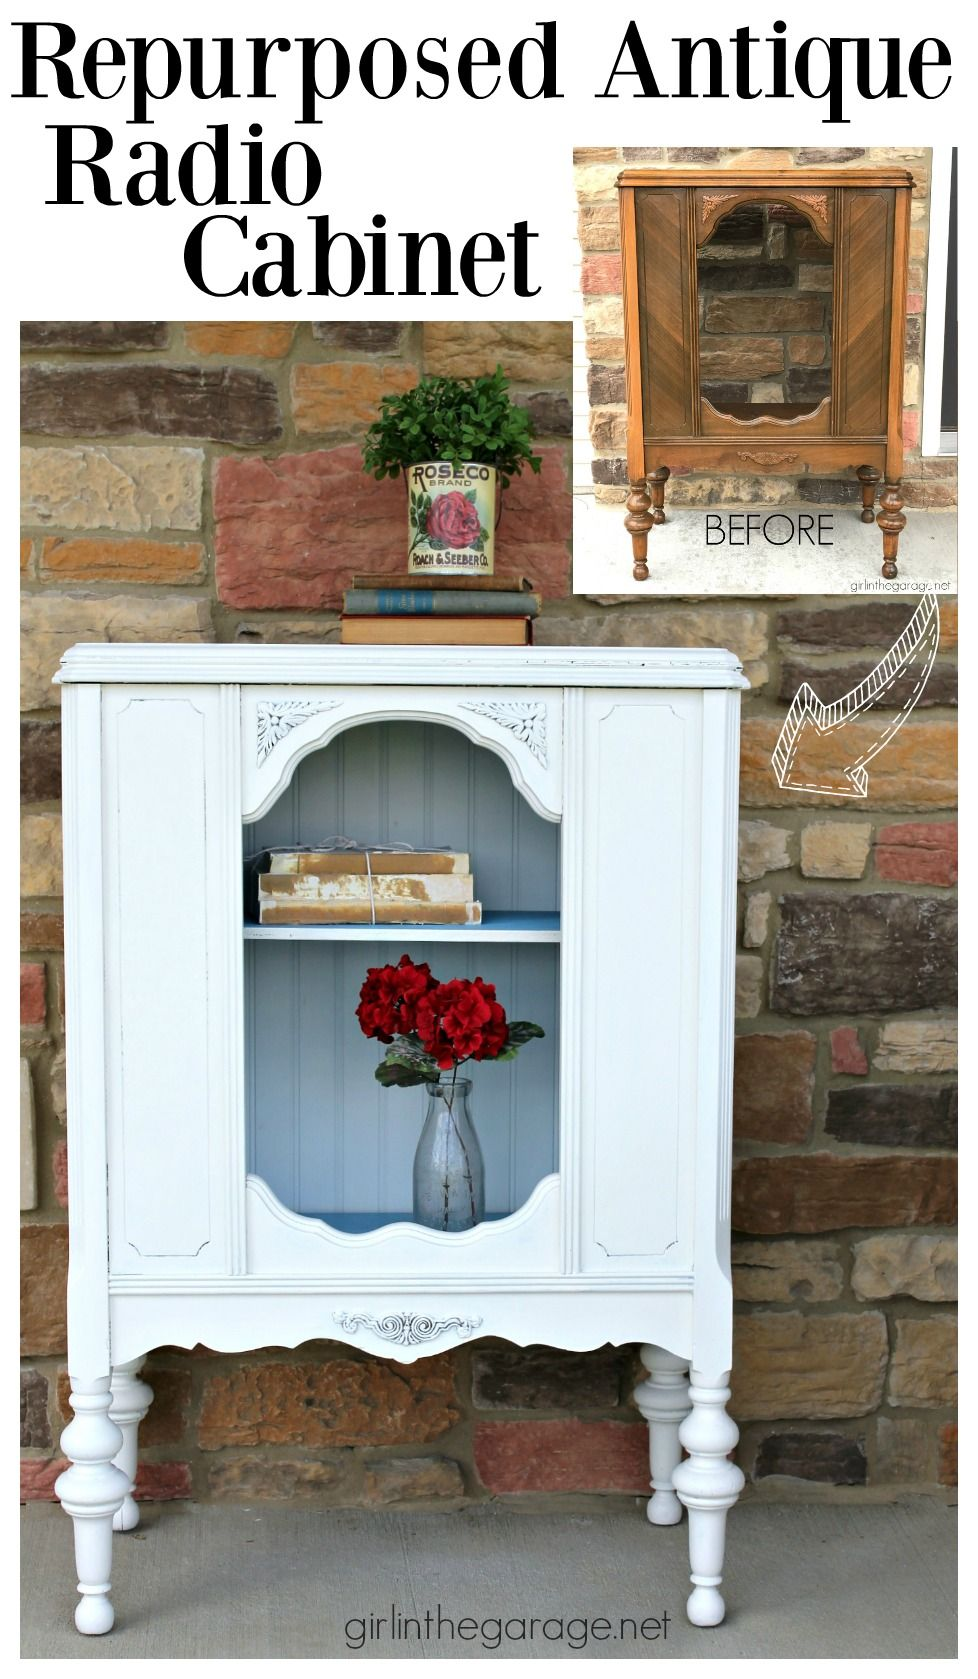 Repurposed antique radio cabinet to bookcase - by Girl in the Garage - Antique Repurposed Radio Cabinet Upcycling Ideas And